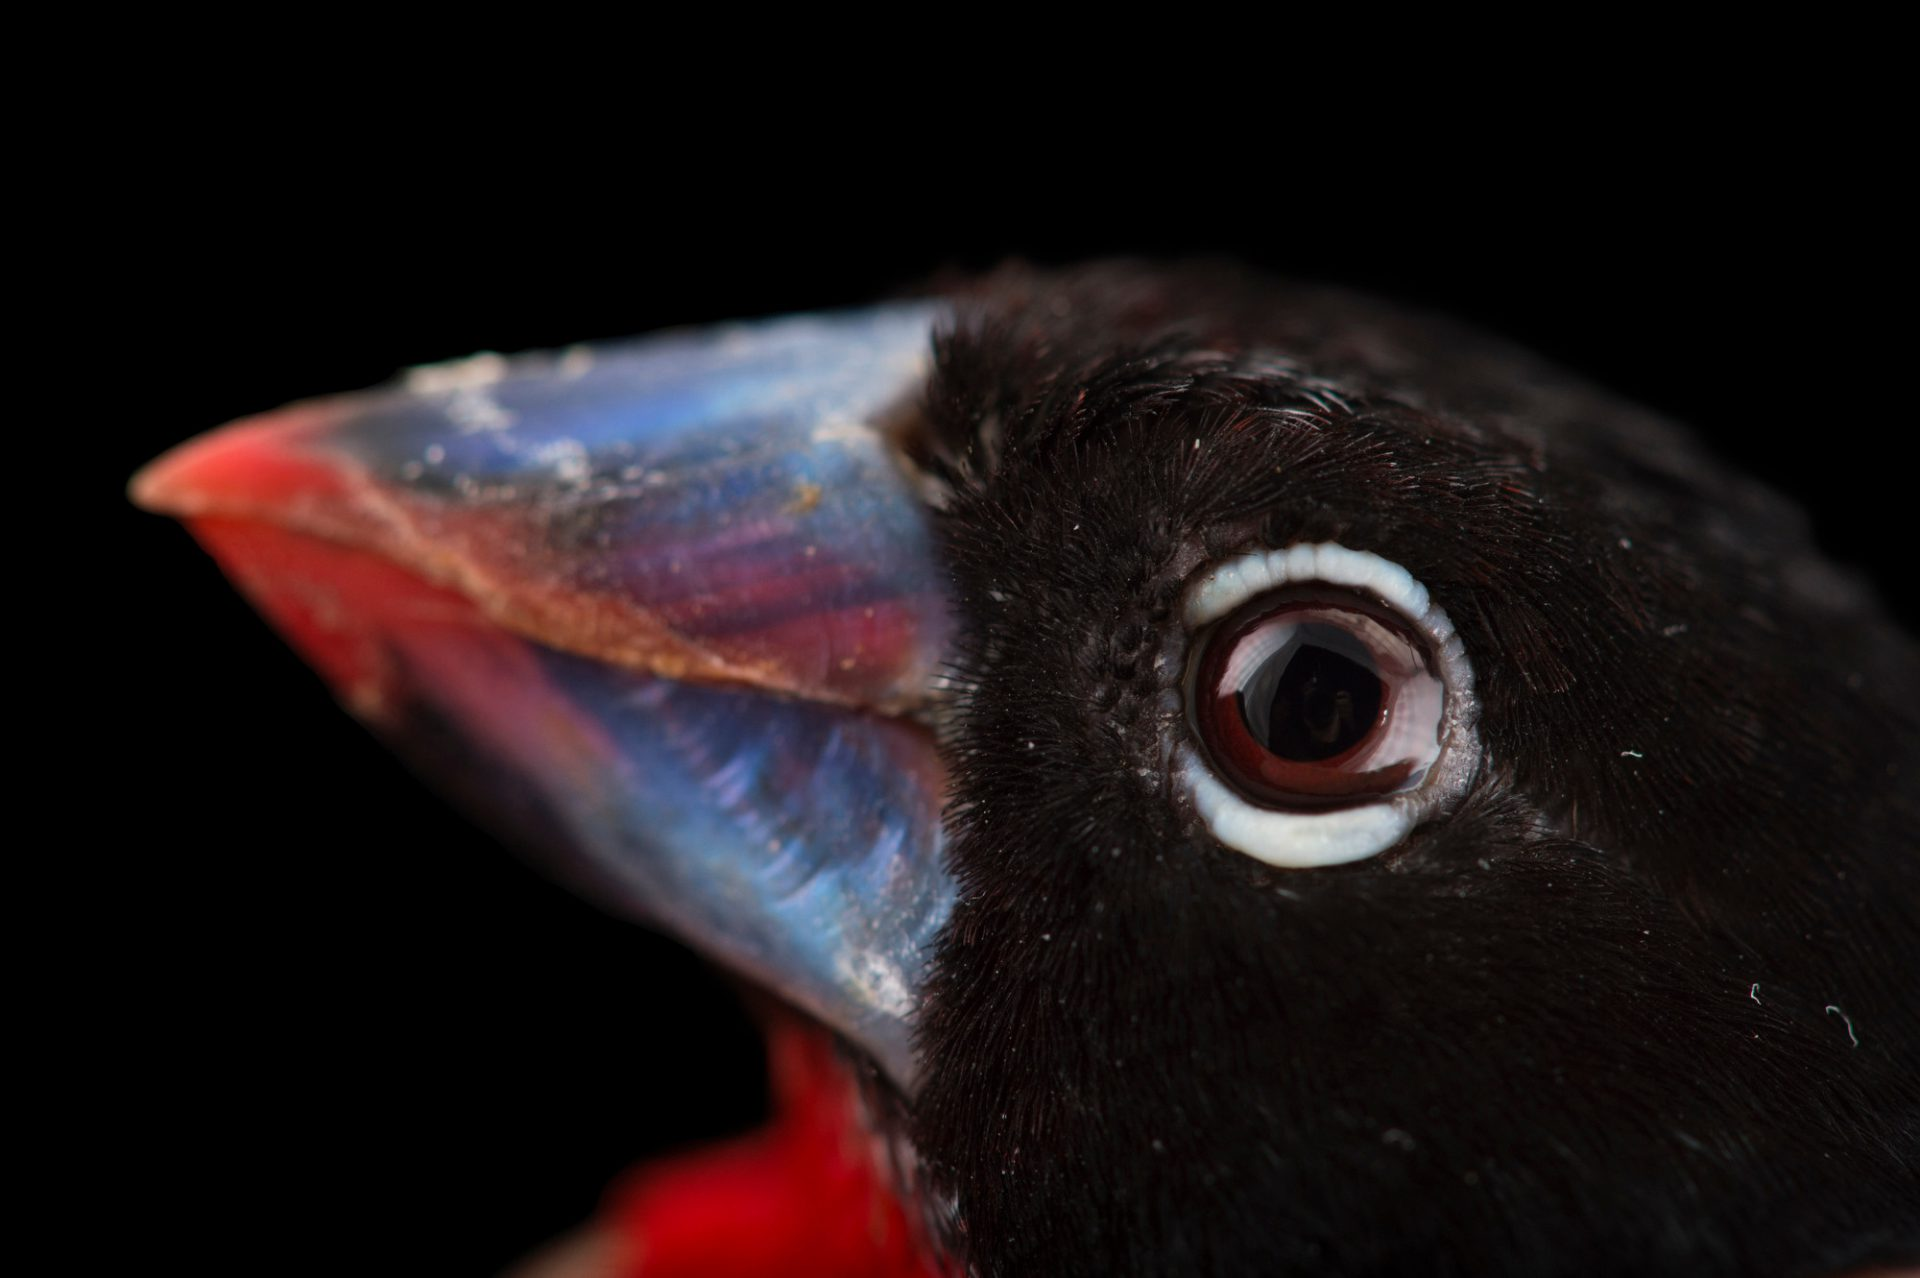 Picture of a Western Bluebill (Spermophaga haematina) at the Houston Zoo.